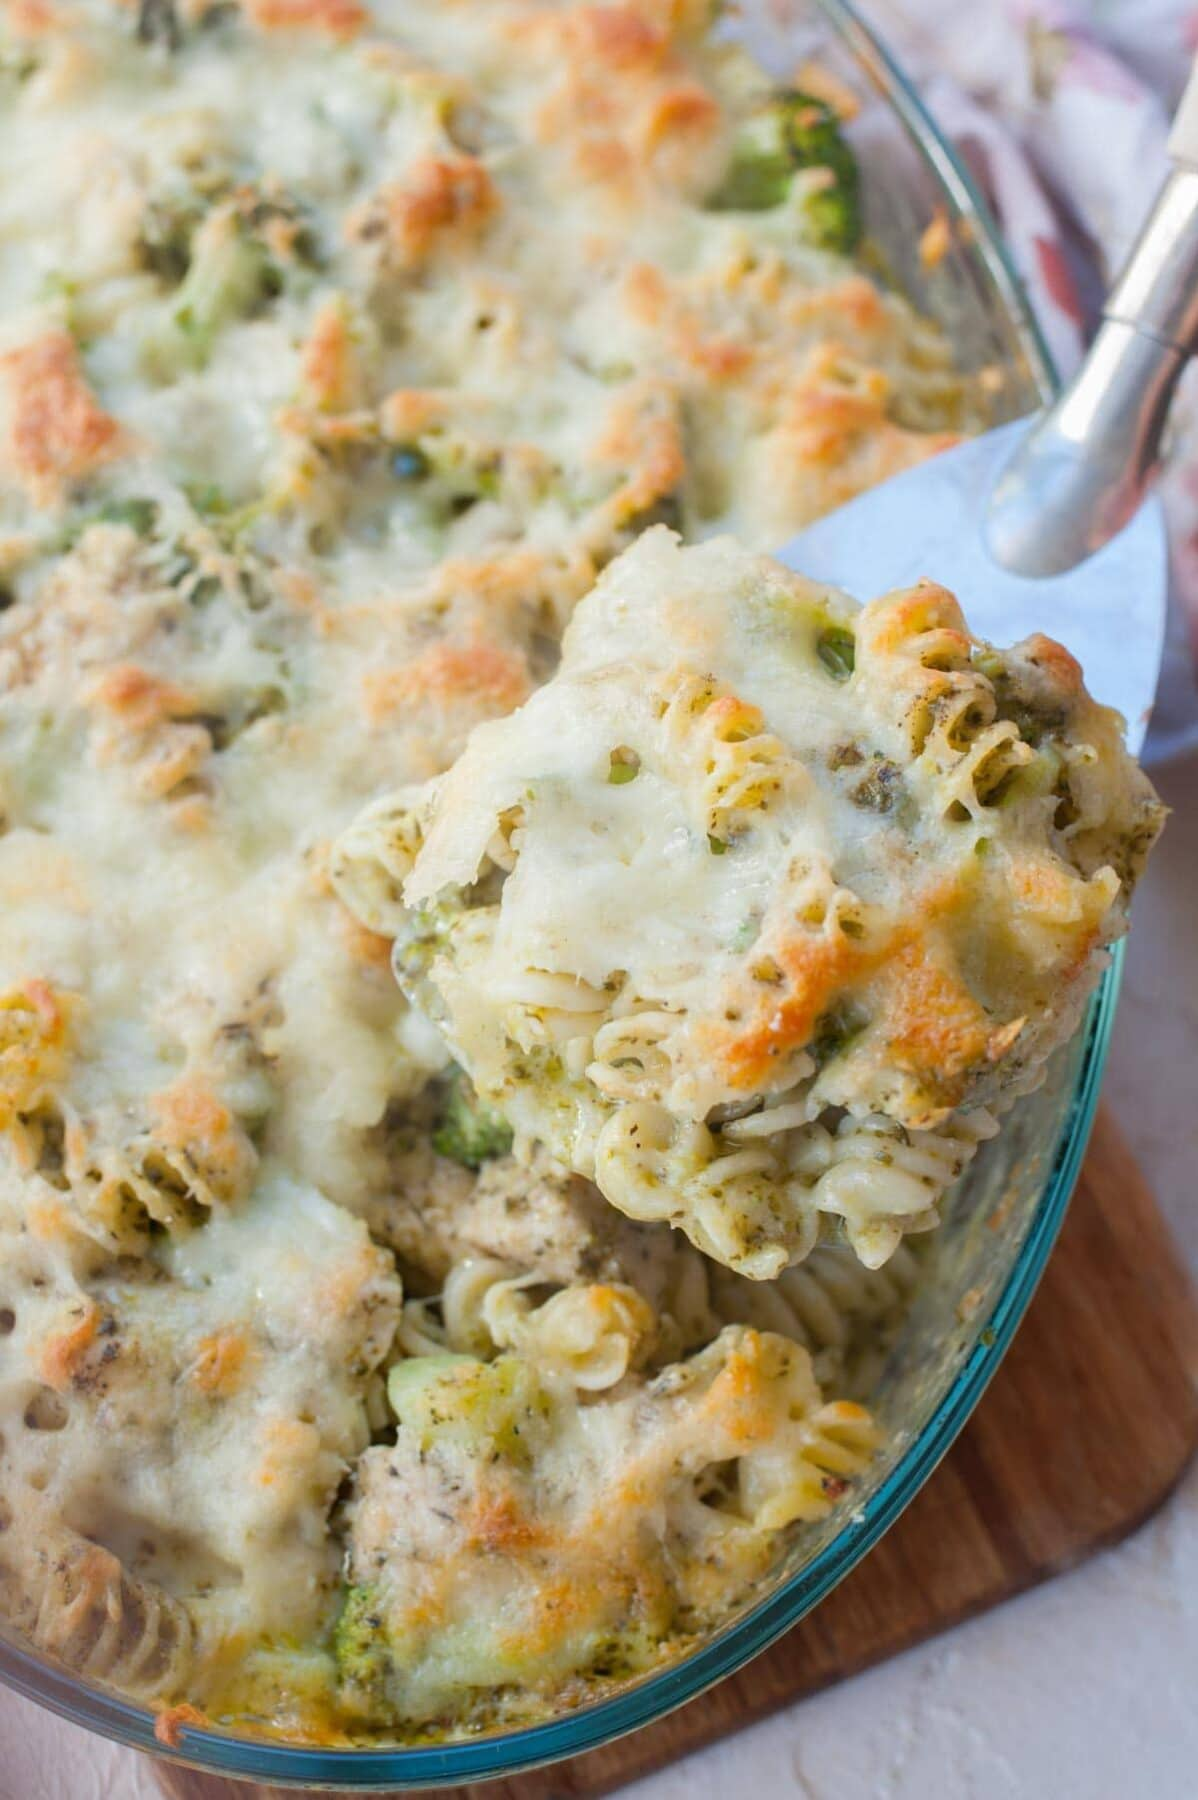 Chicken pesto bake on a large spatula. Casserole dish in the background.